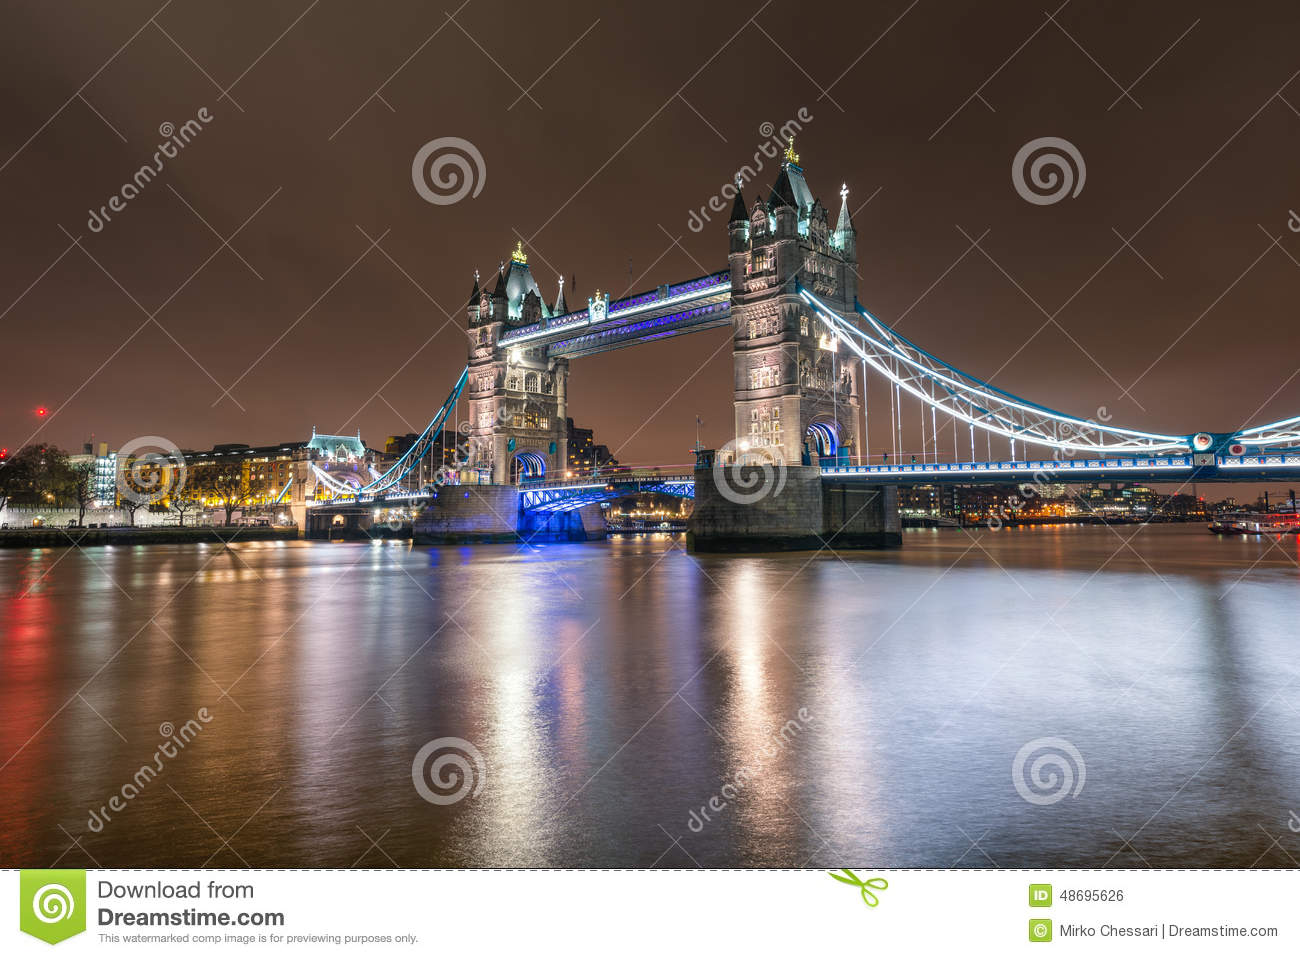 Close up view of the Tower Bridge in London